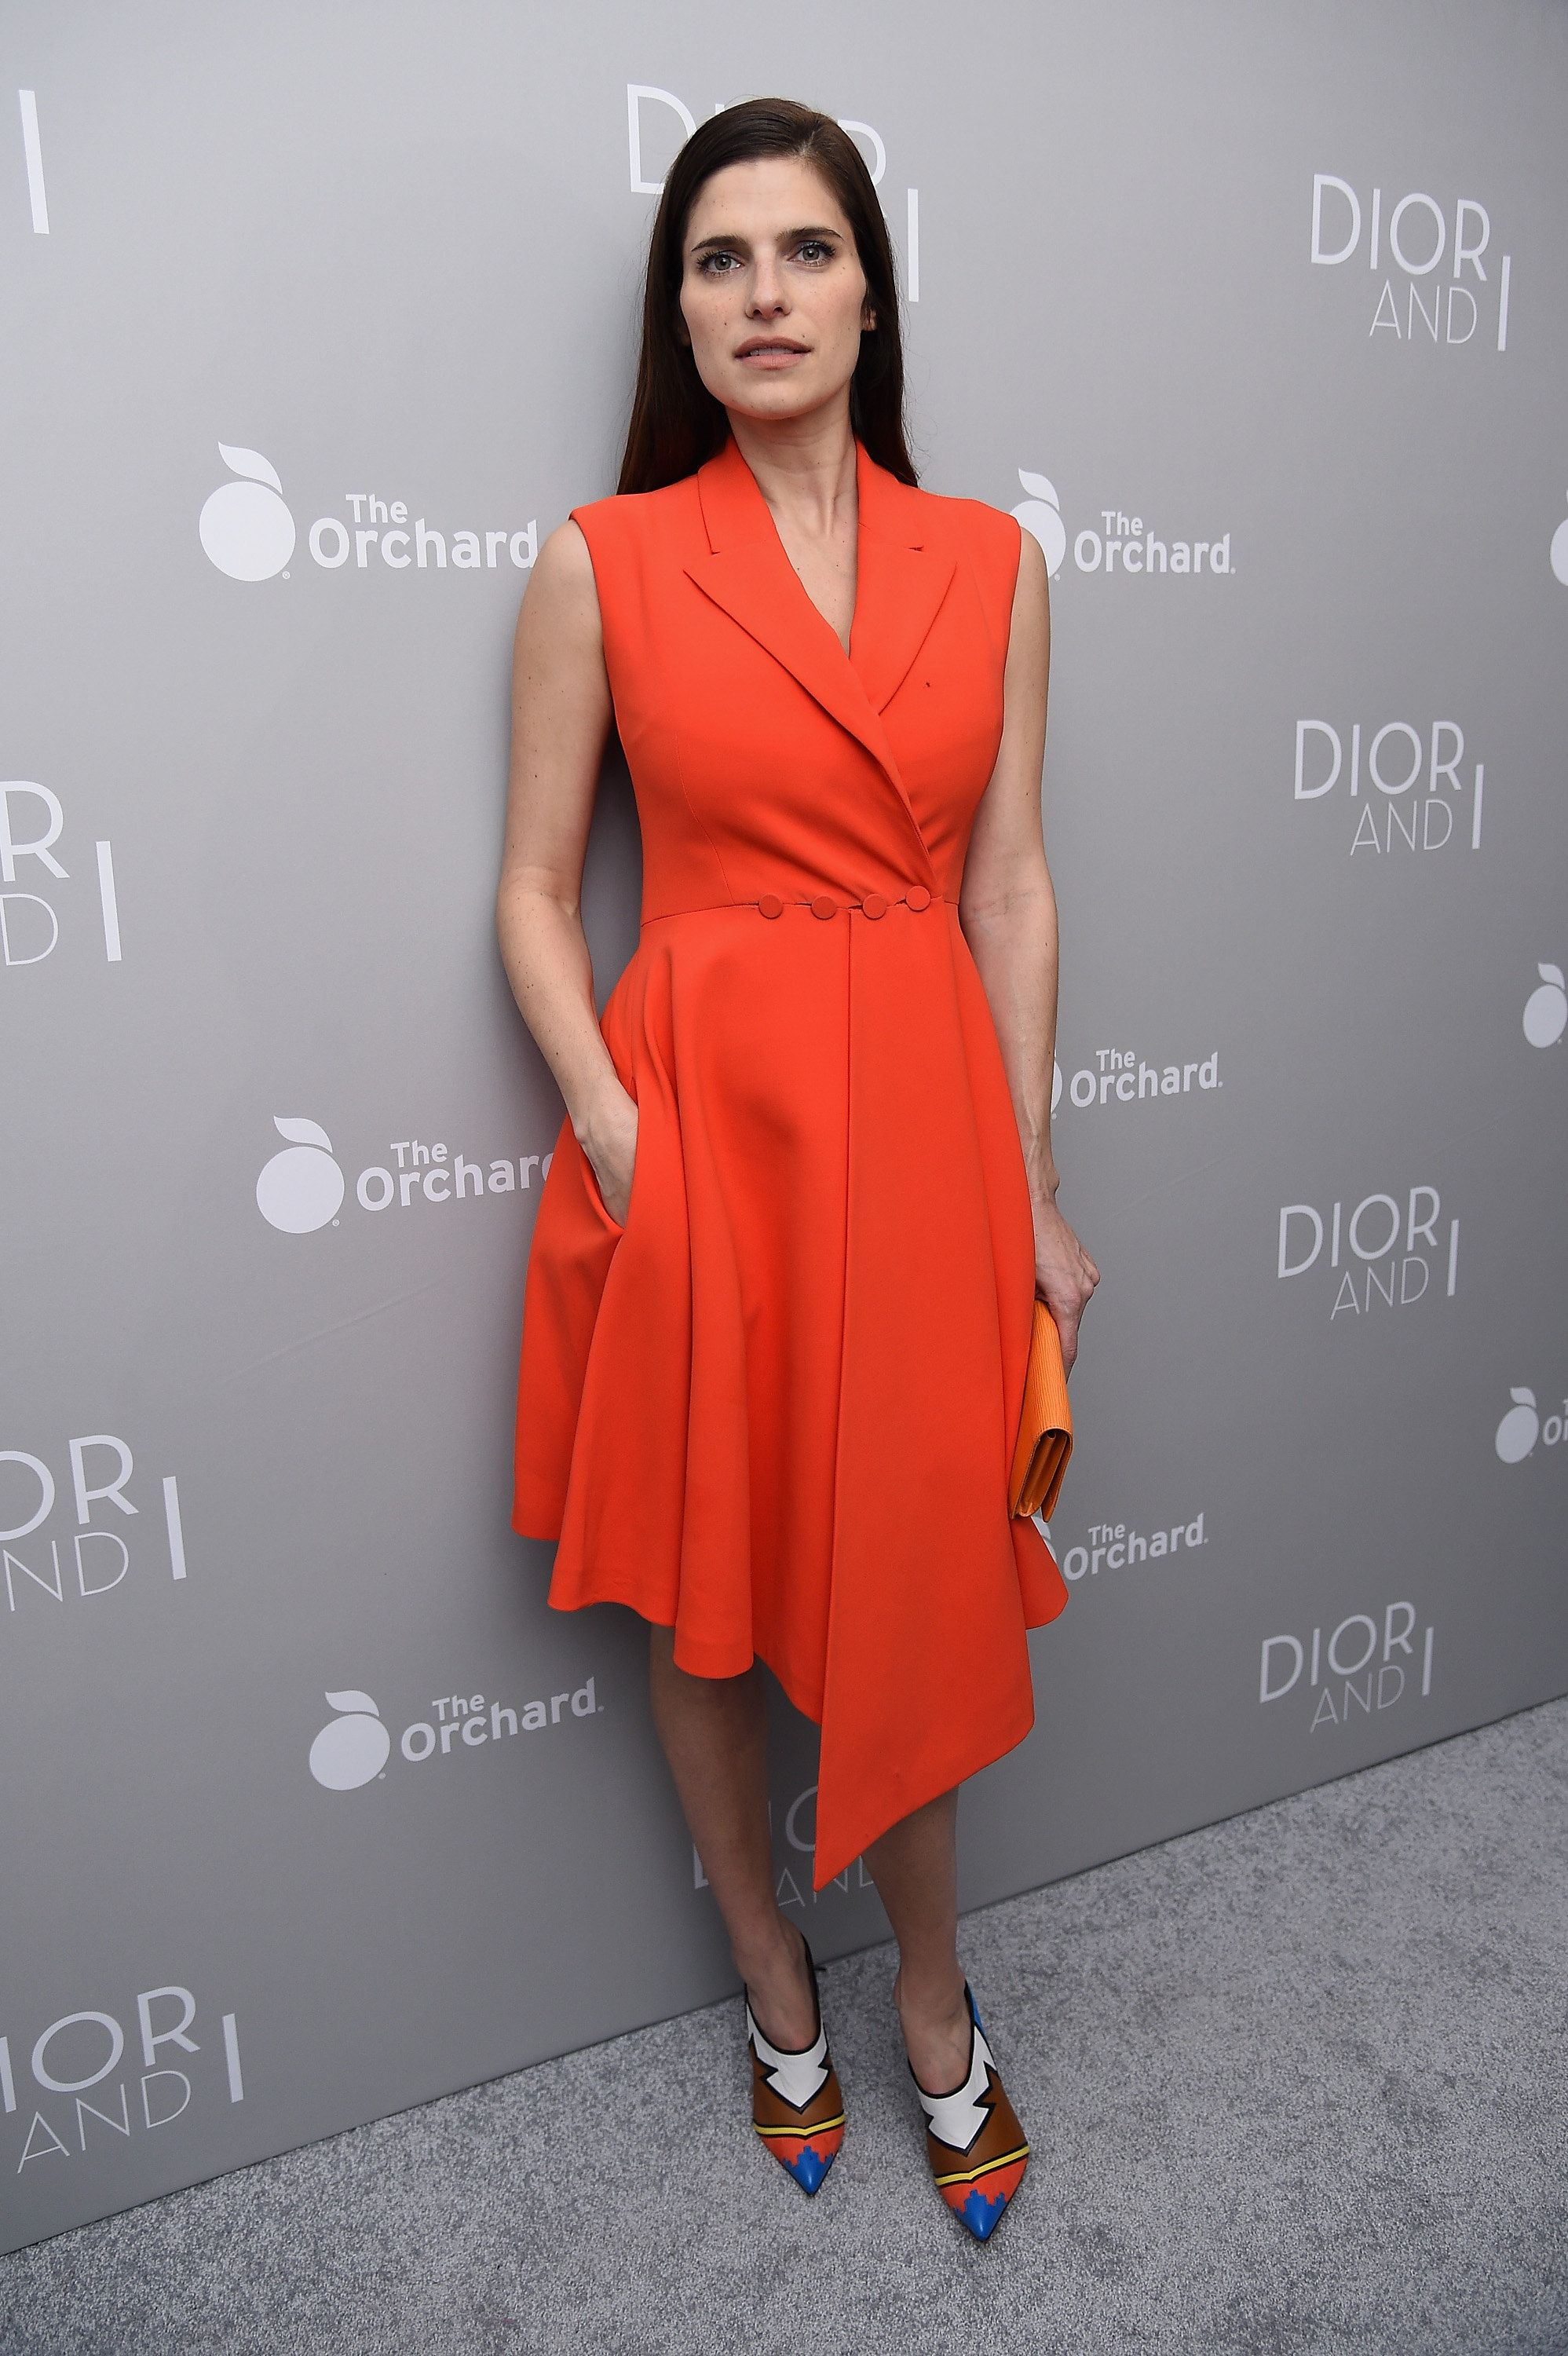 Lake Bell - The Orchard's DIOR & I Screening, NYC 7 April 2015